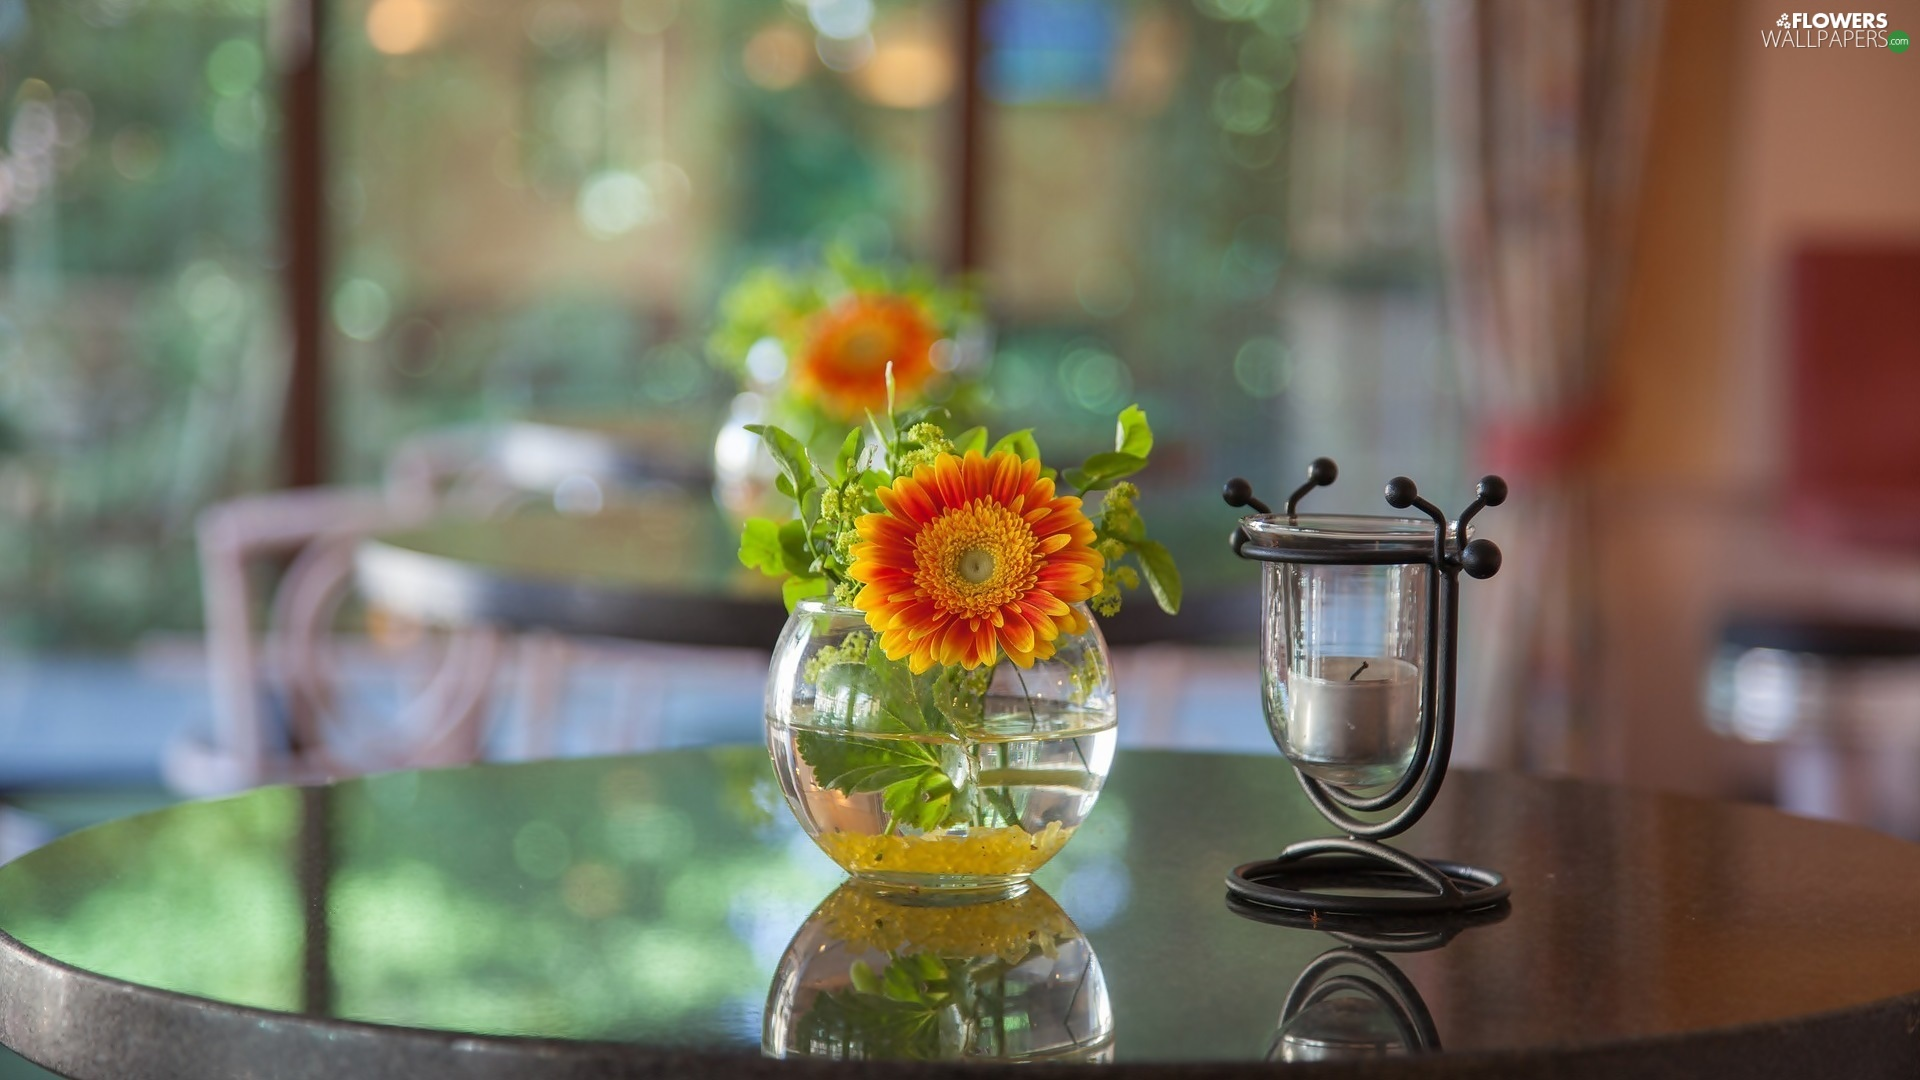 Candle, blurry background, vase, Gerbera, decoration